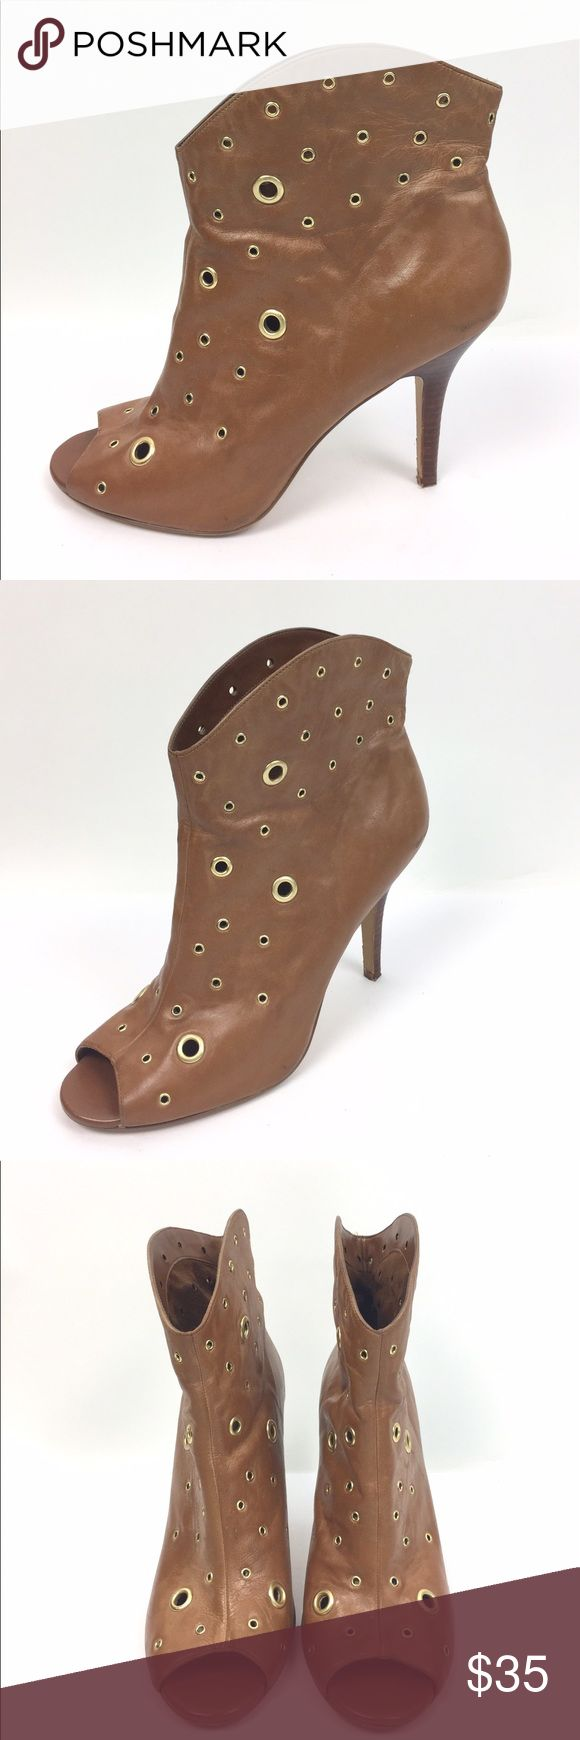 "BCBGeneration Leather Peep Toe Heeled Bootie 11 Brown leather 4"" heeled bootie with peep toe and golden grommets by BCBGeneration. Style name is PL Docker. There is wear to the heel and heel leather but these look nice overall. Size 11 B. A04060 BCBGeneration Shoes Heels"